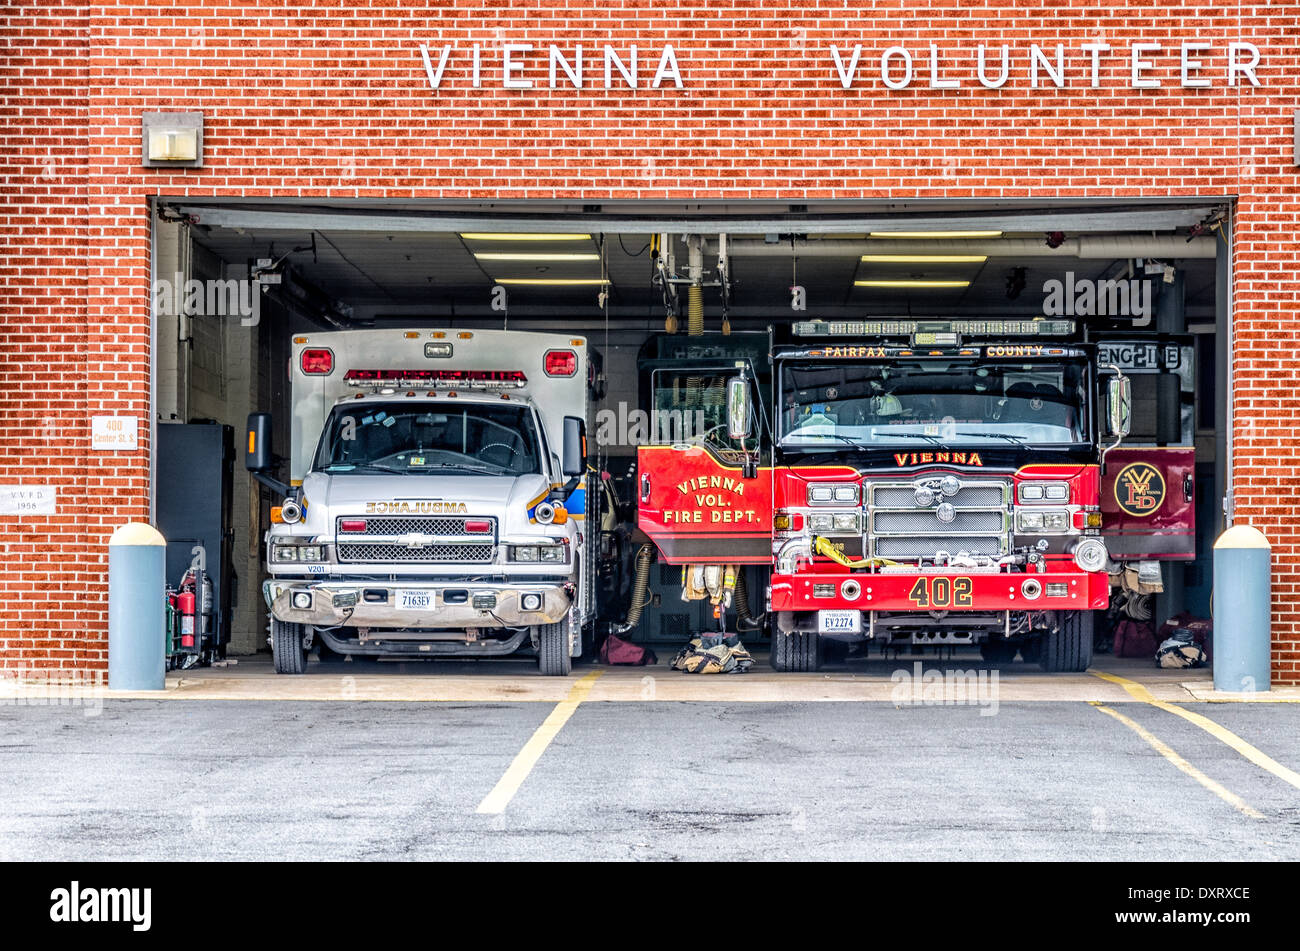 Vienna Volunteer Fire Department, Center Street, Vienna, Virginia - Stock Image